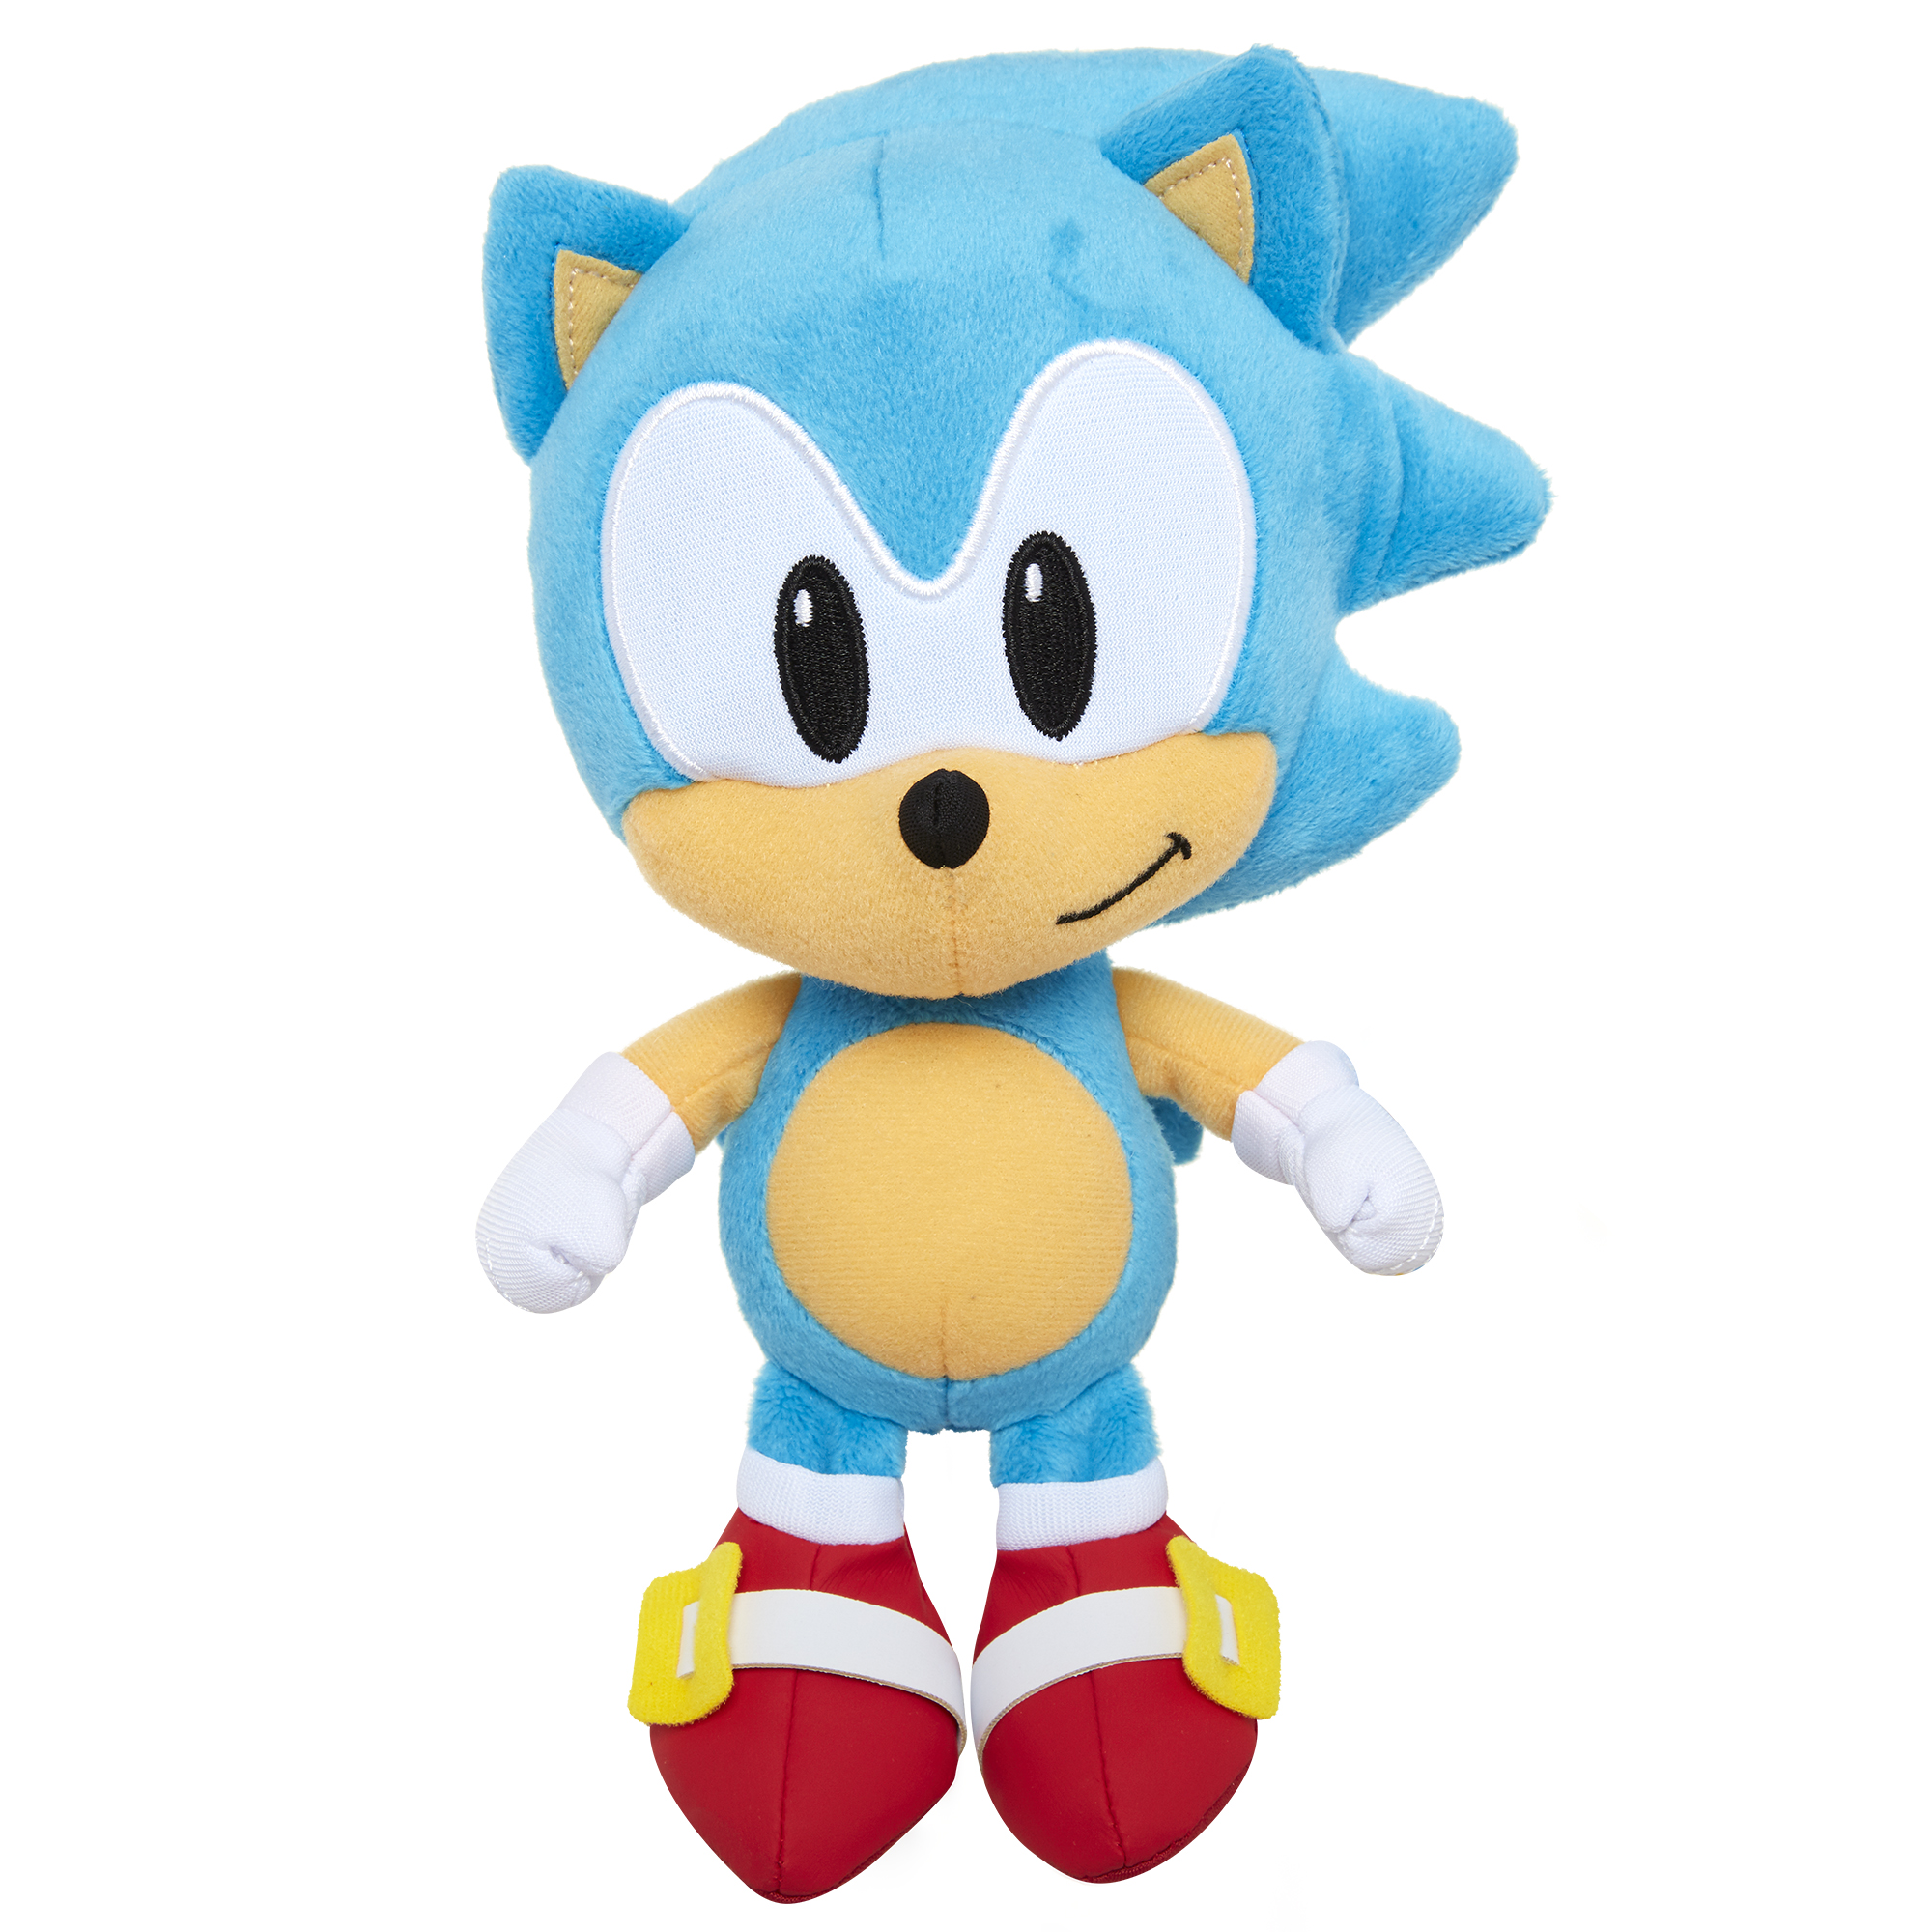 Sonic the Hedgehog - 7in Basic Plush - Sonic